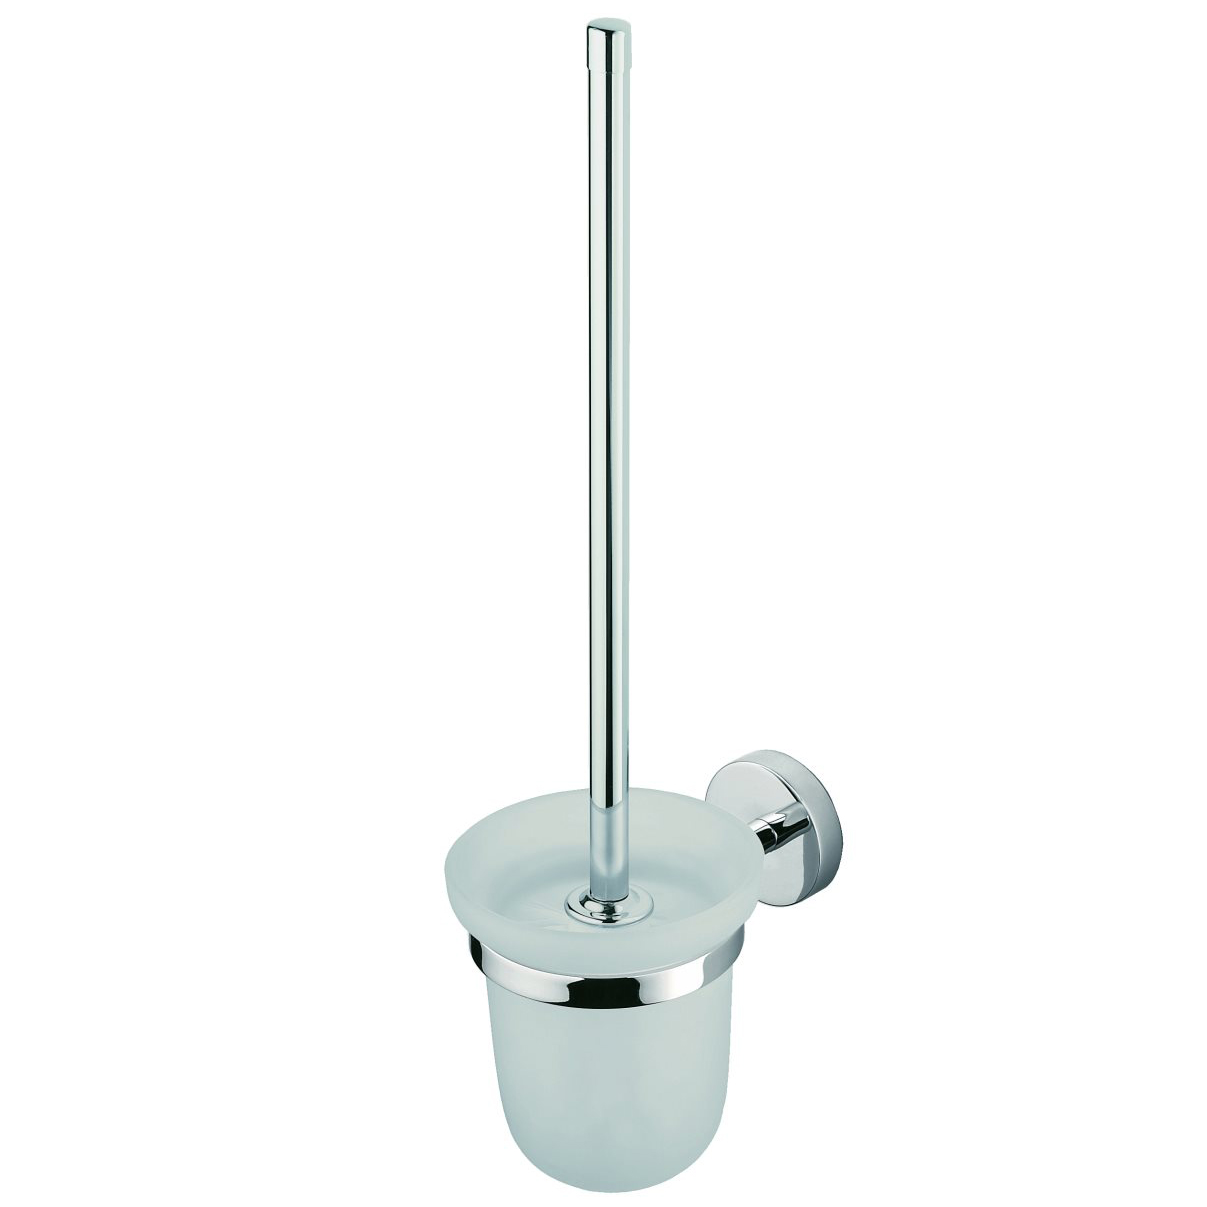 click on Toilet Brush & Holder image to enlarge